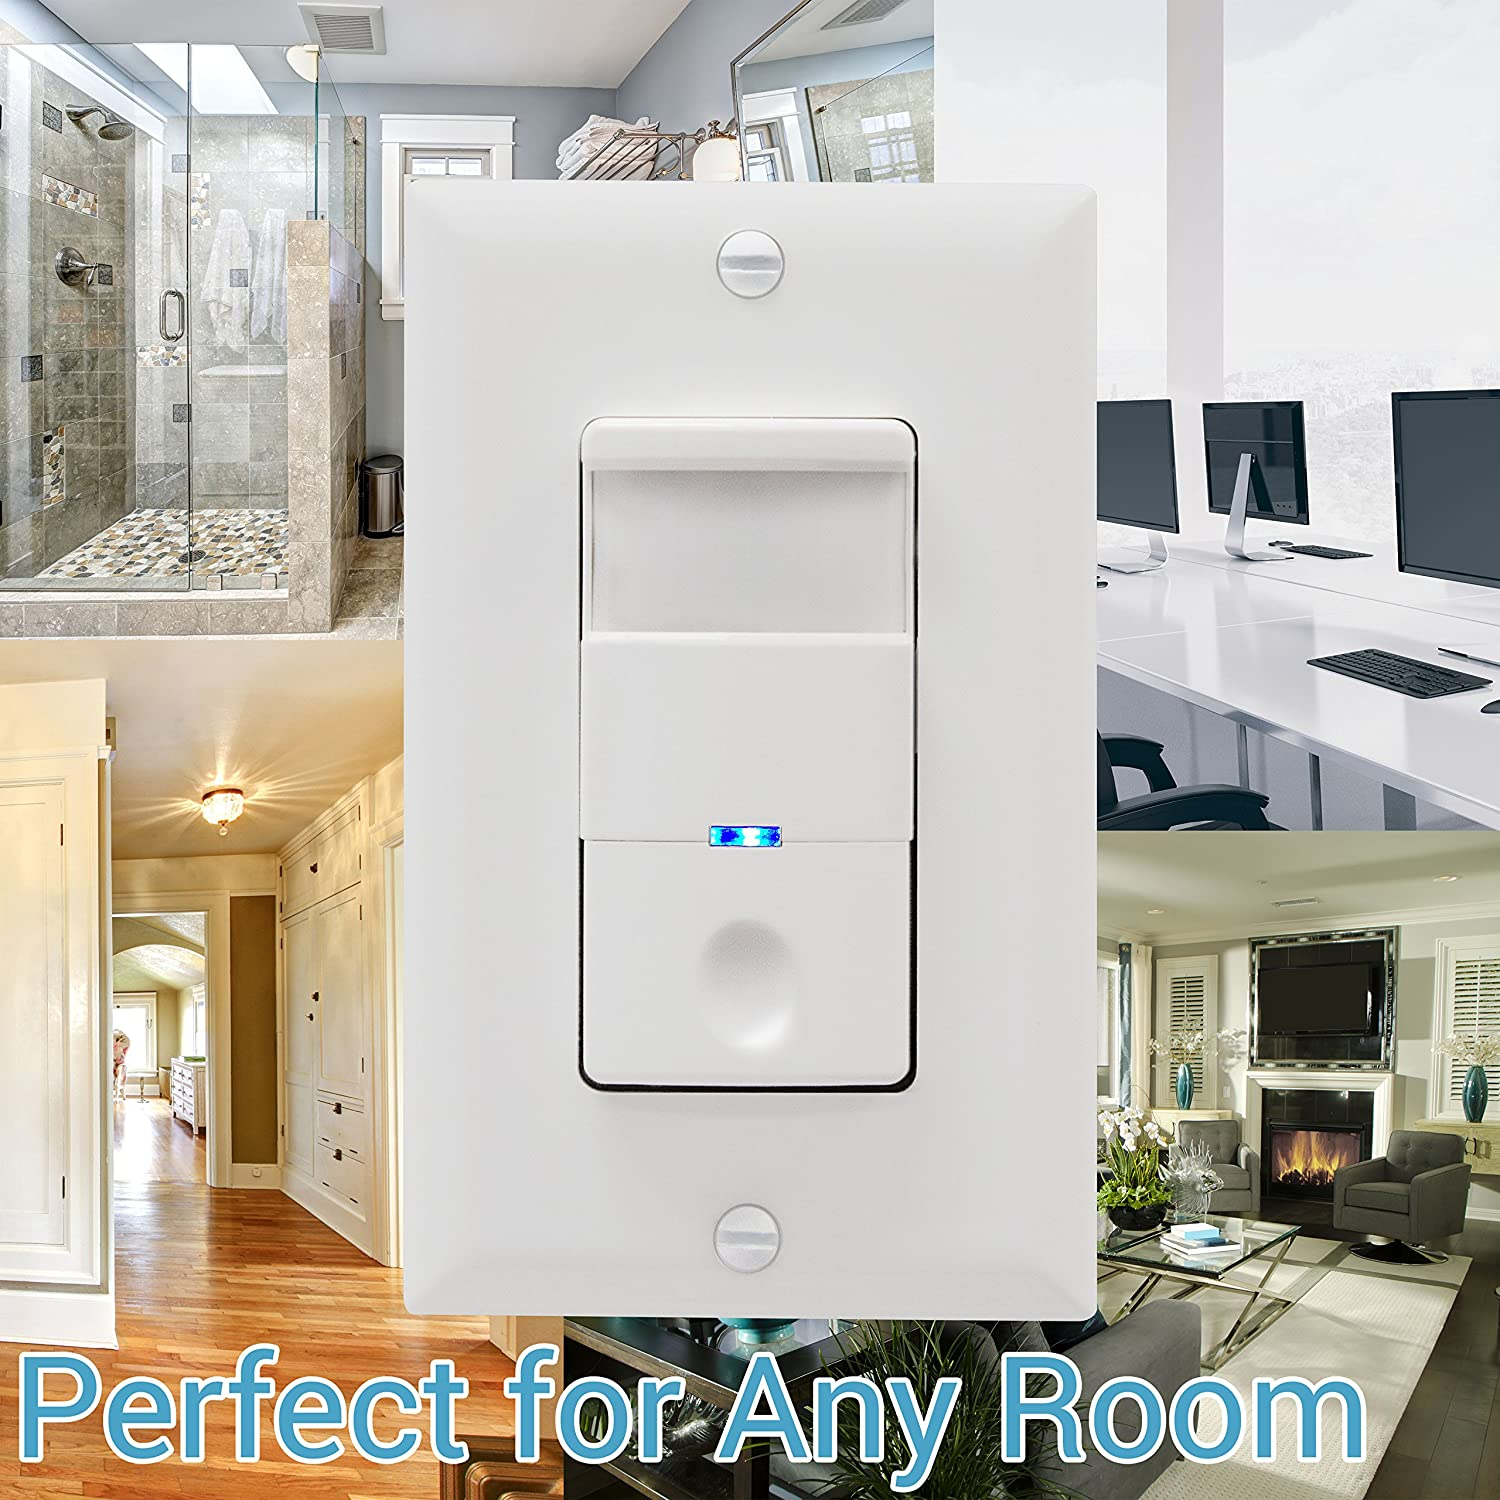 Single Pole White 4A TOPGREENER Motion Sensor Switch No Neutral Required TDOS5-J-W